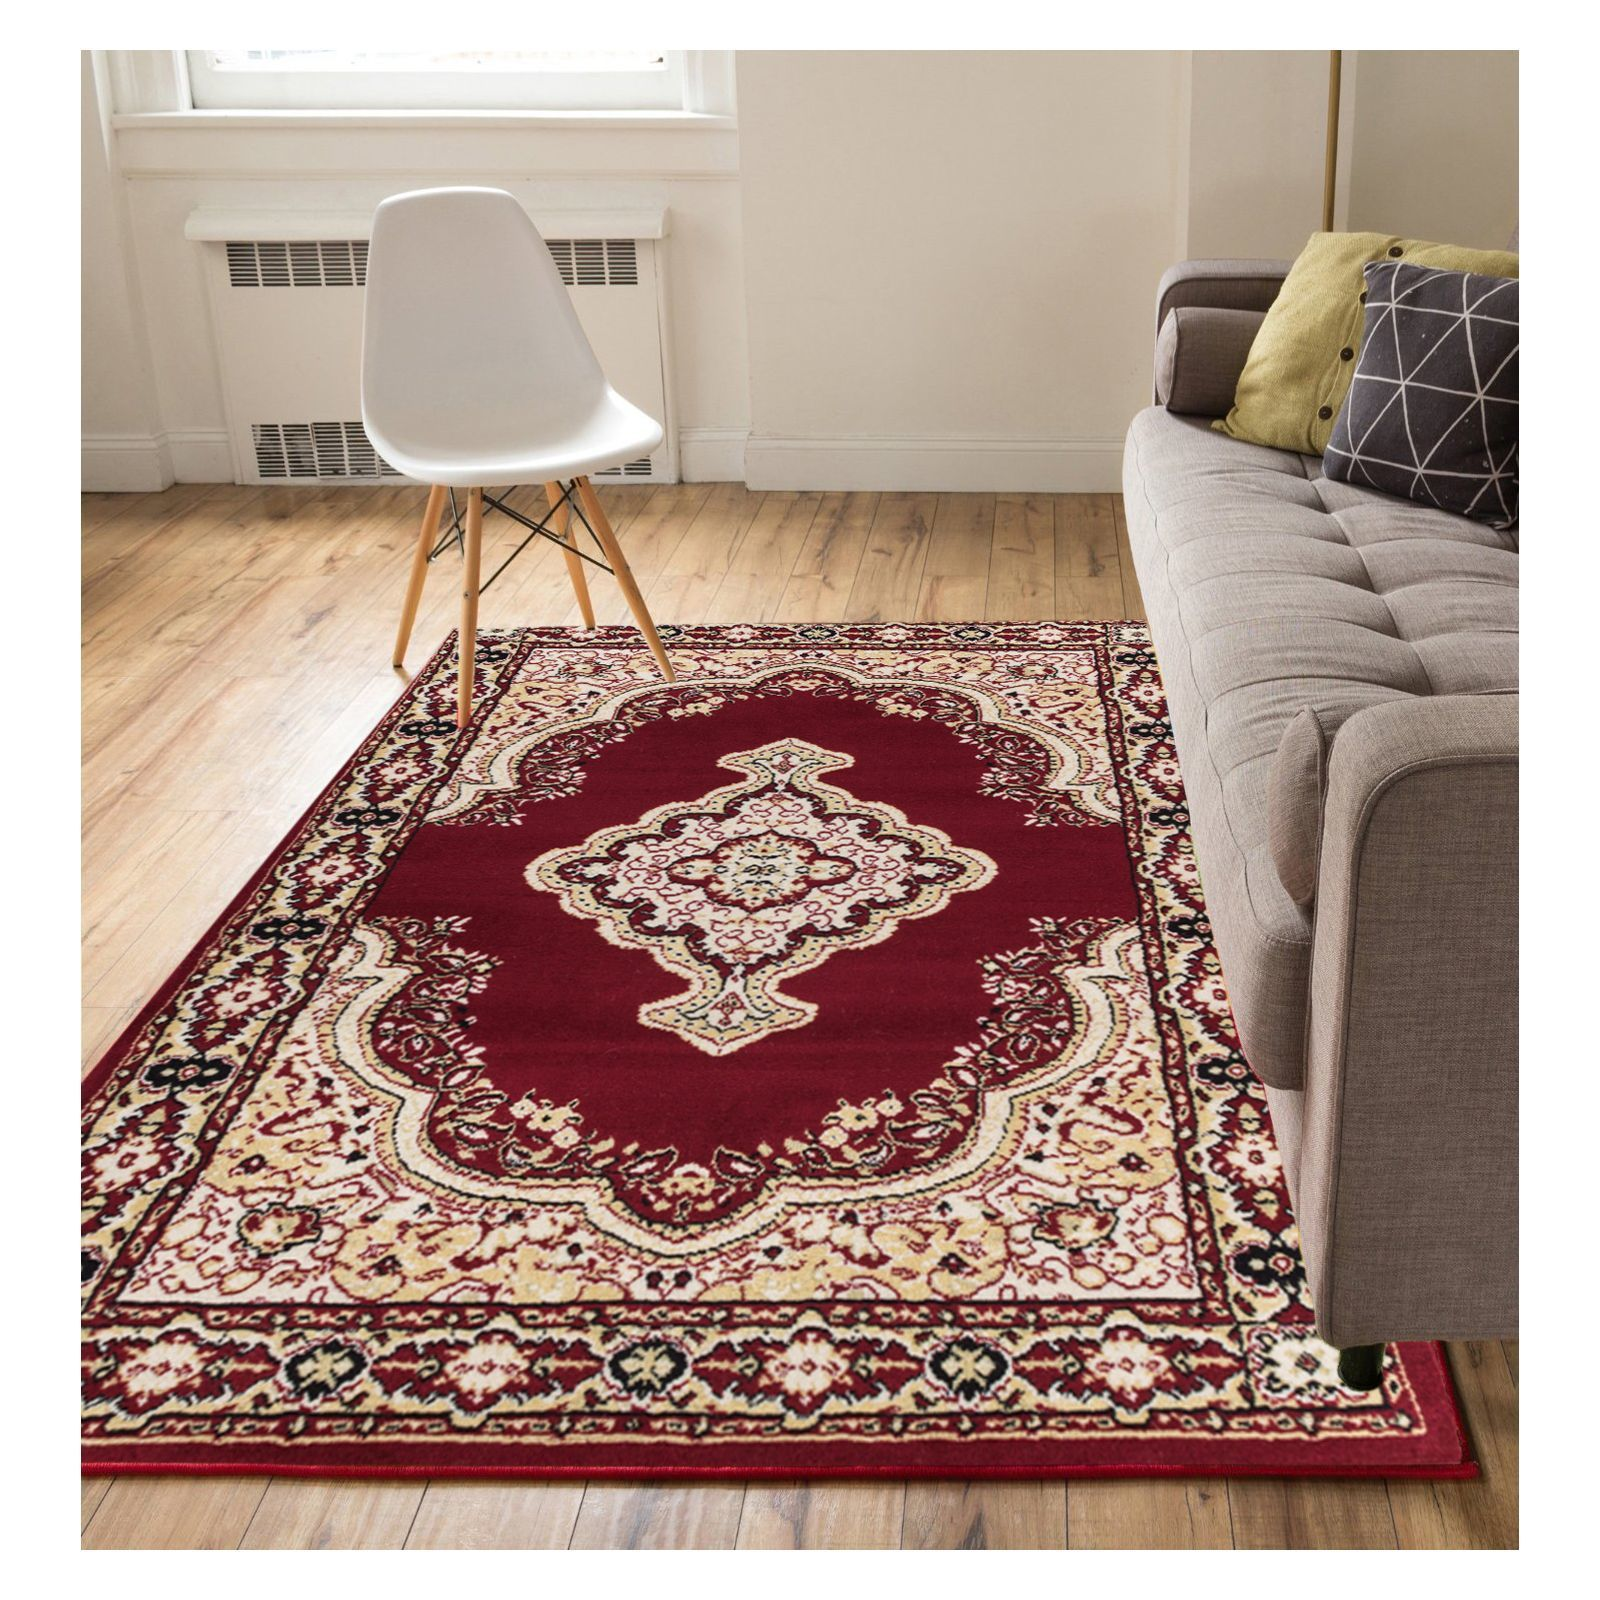 Well Woven Eastgate Traditional Medallion Red Area Rug - 311 x 53 (Red)